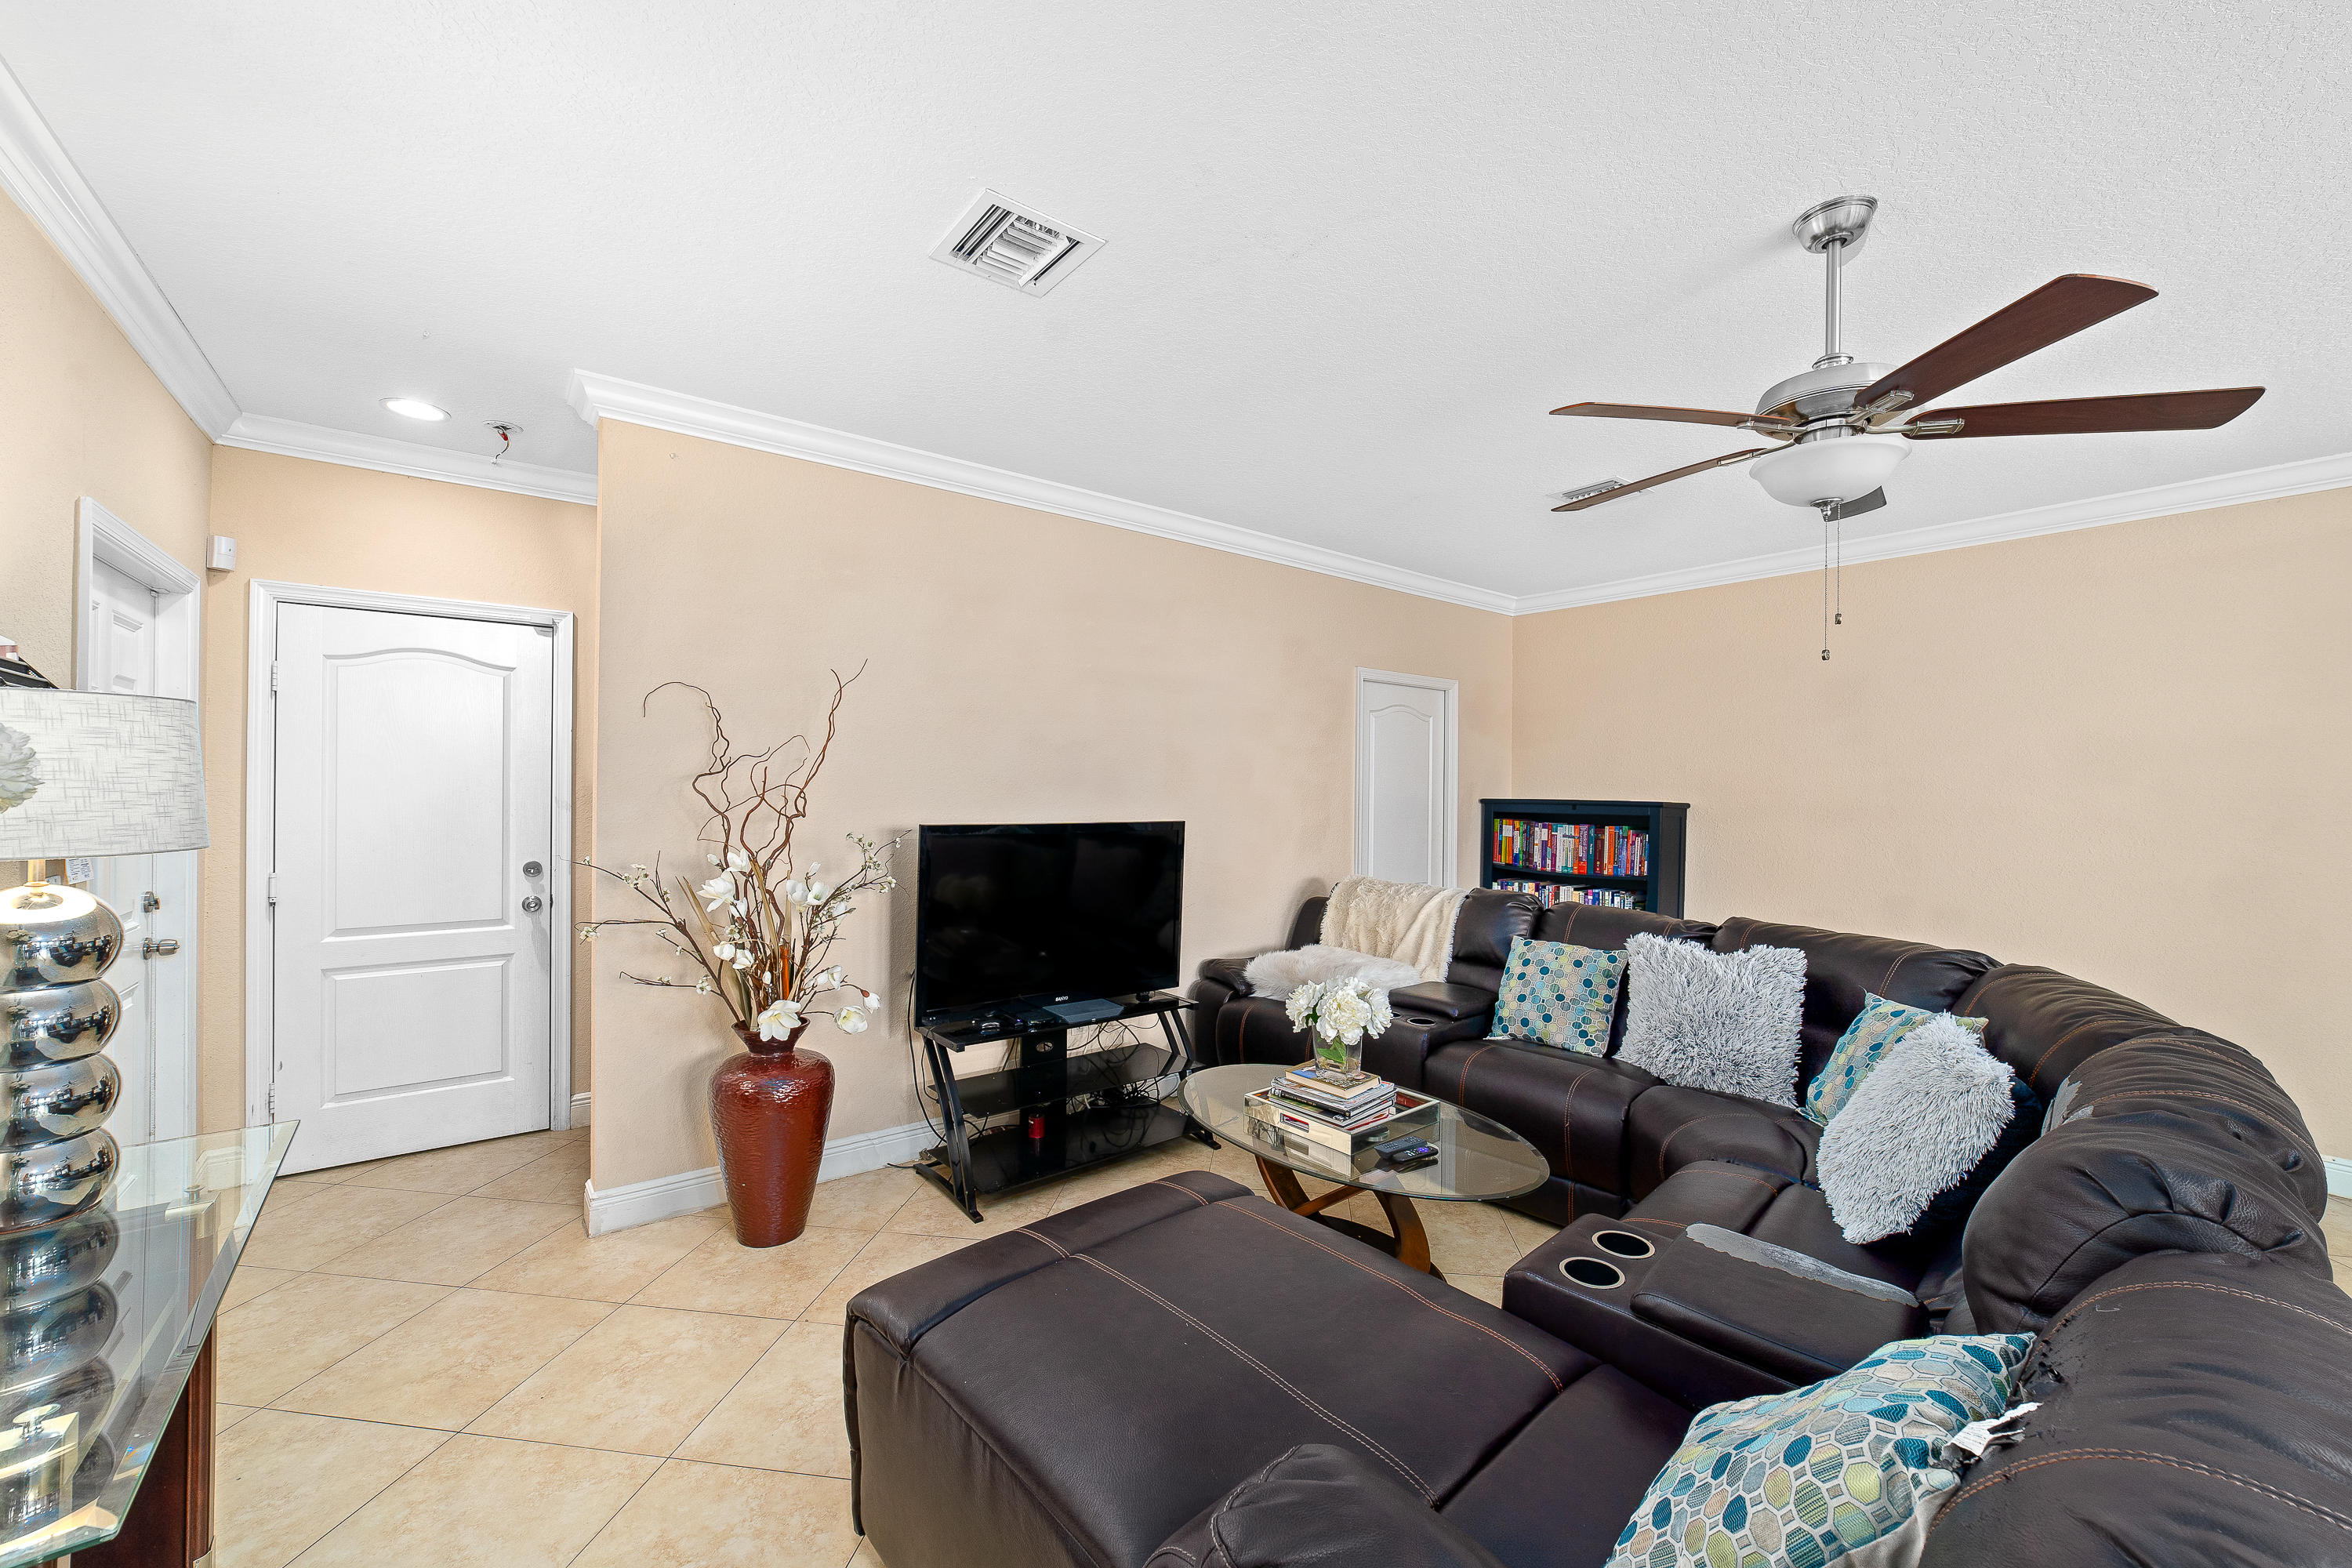 3225 Johns Place - 33461 - FL - Palm Springs